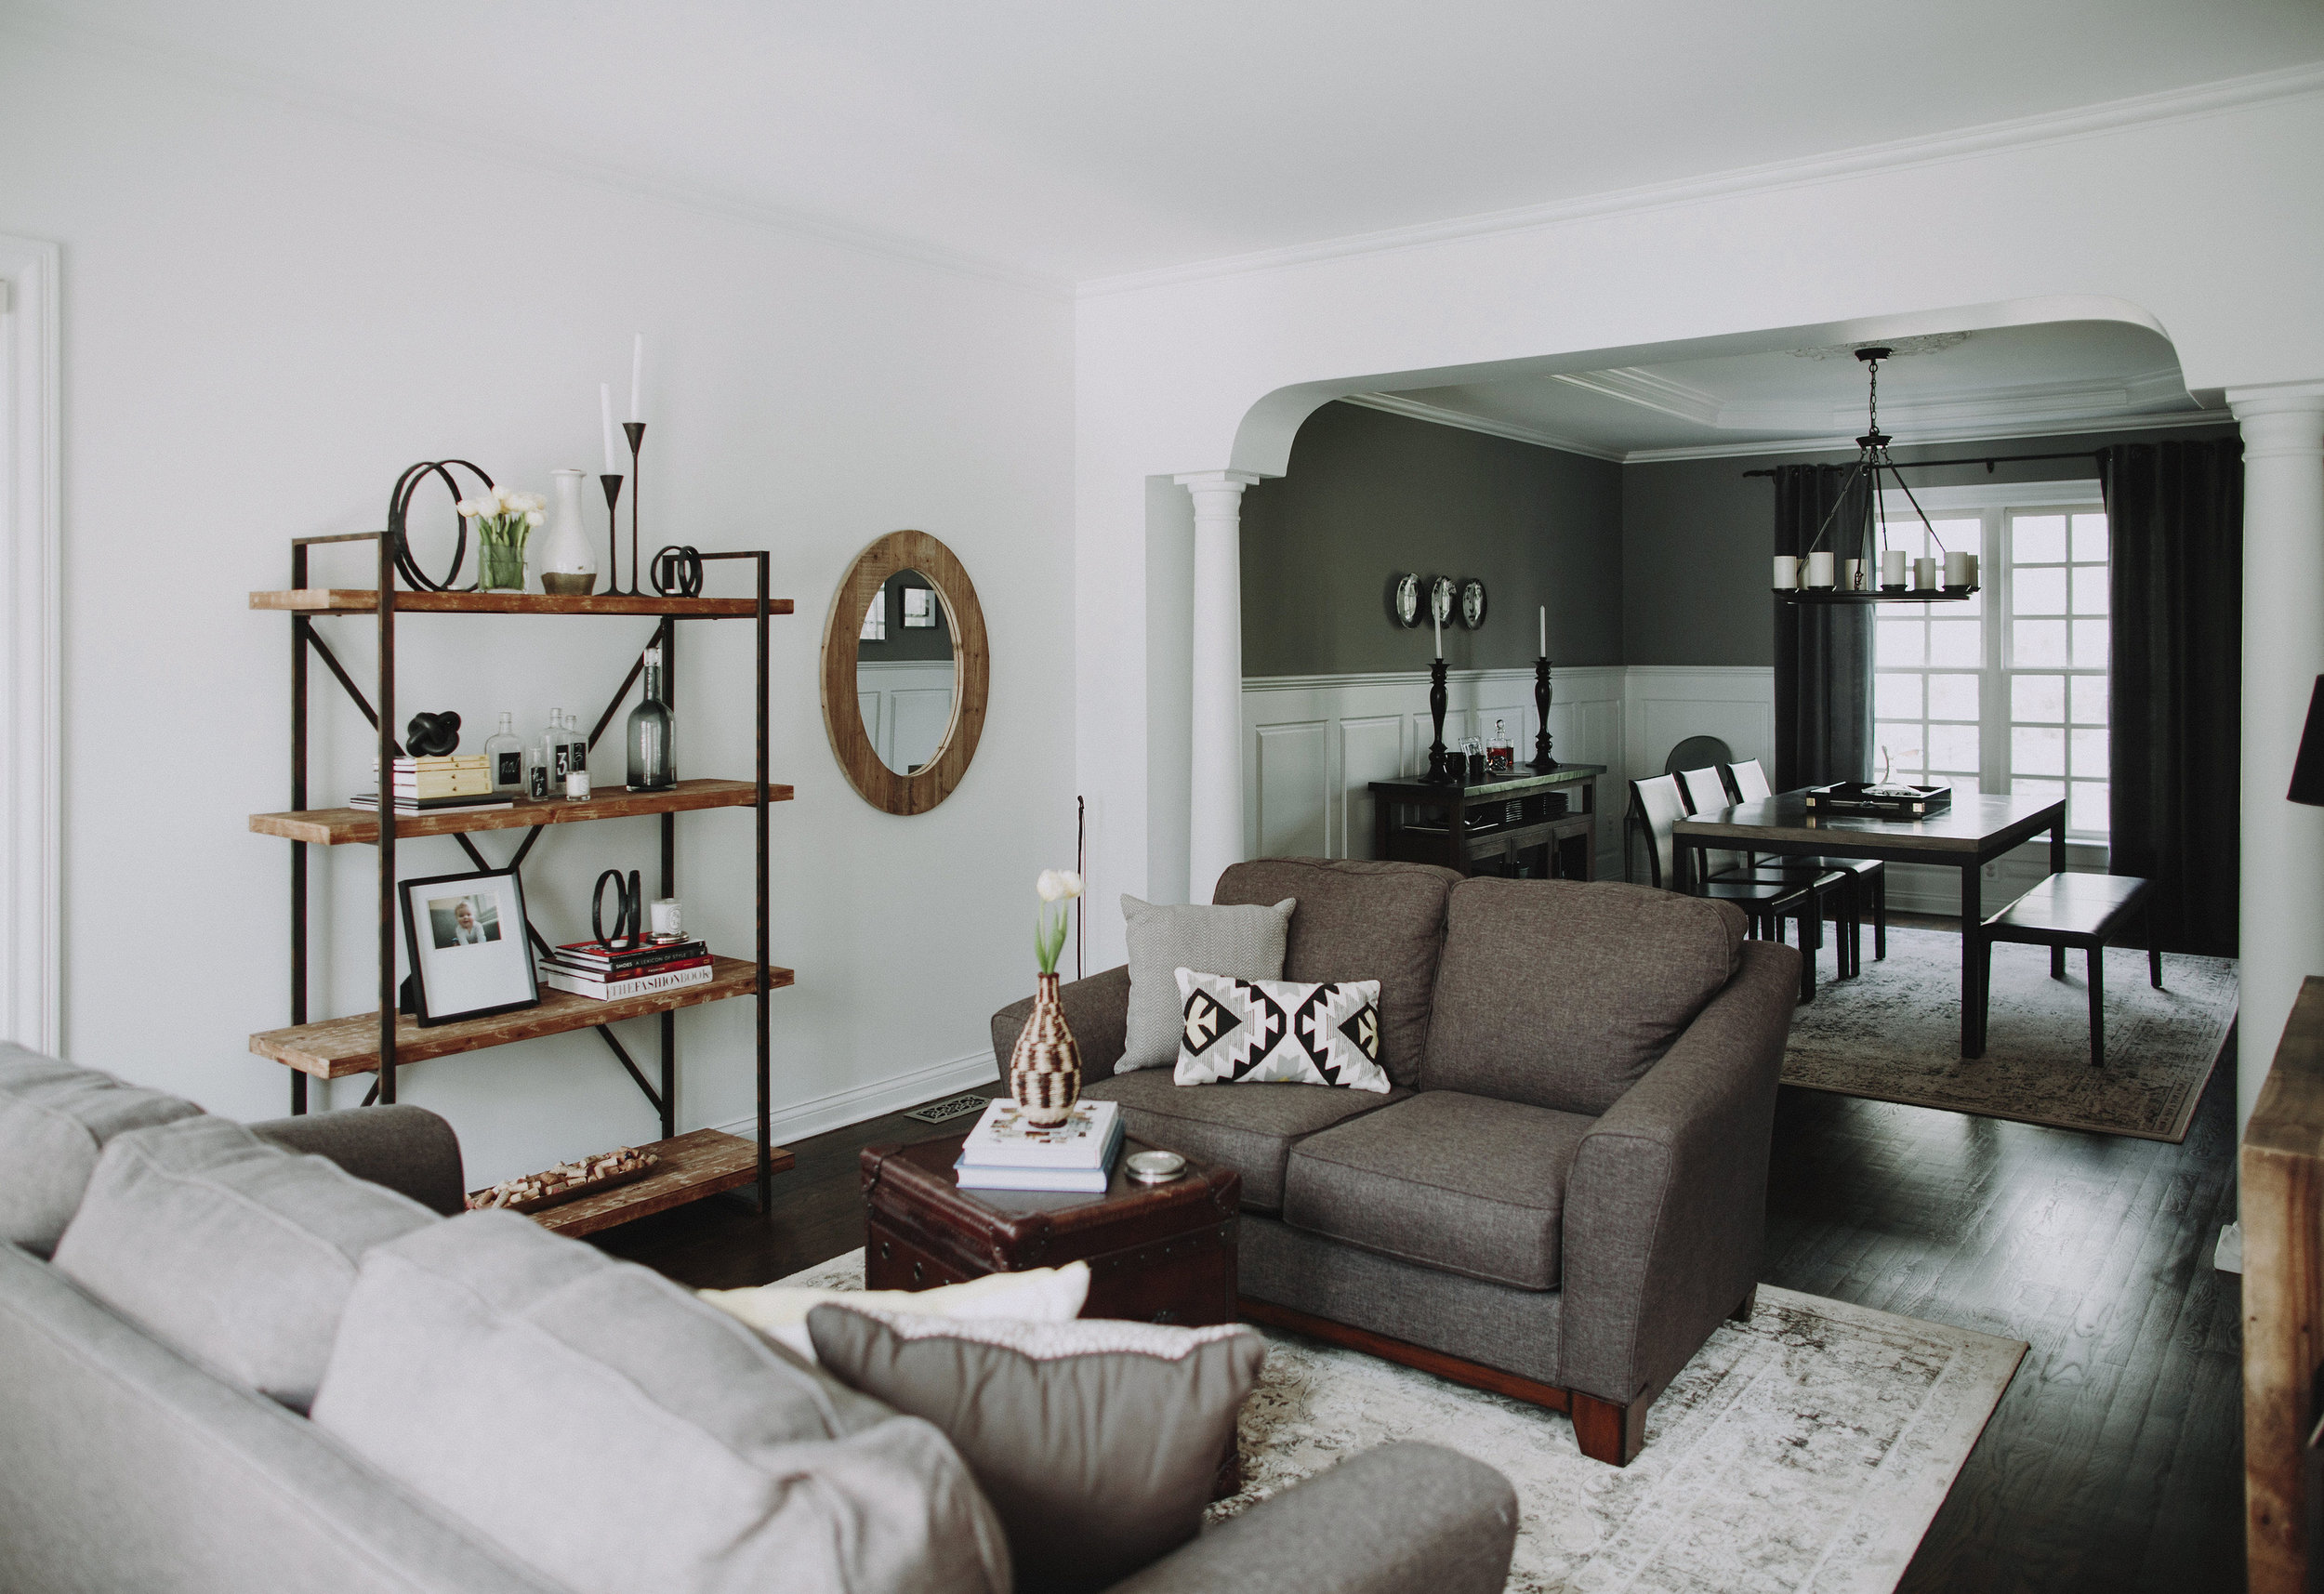 SPACES BY STEINITZ Family Neutral Living Room